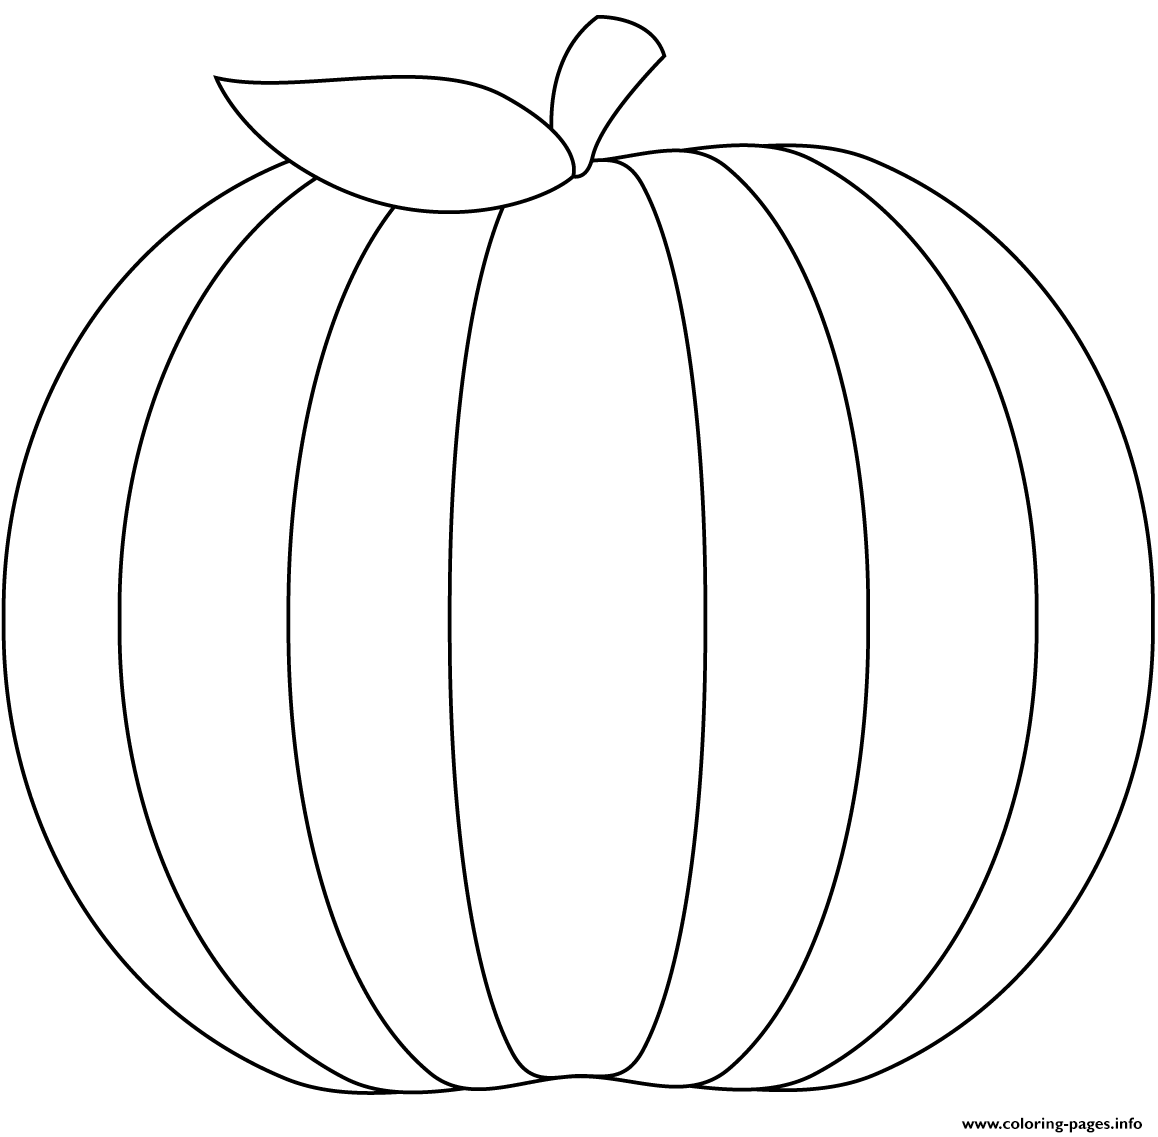 printable blank pumpkin coloring pages - photo#27